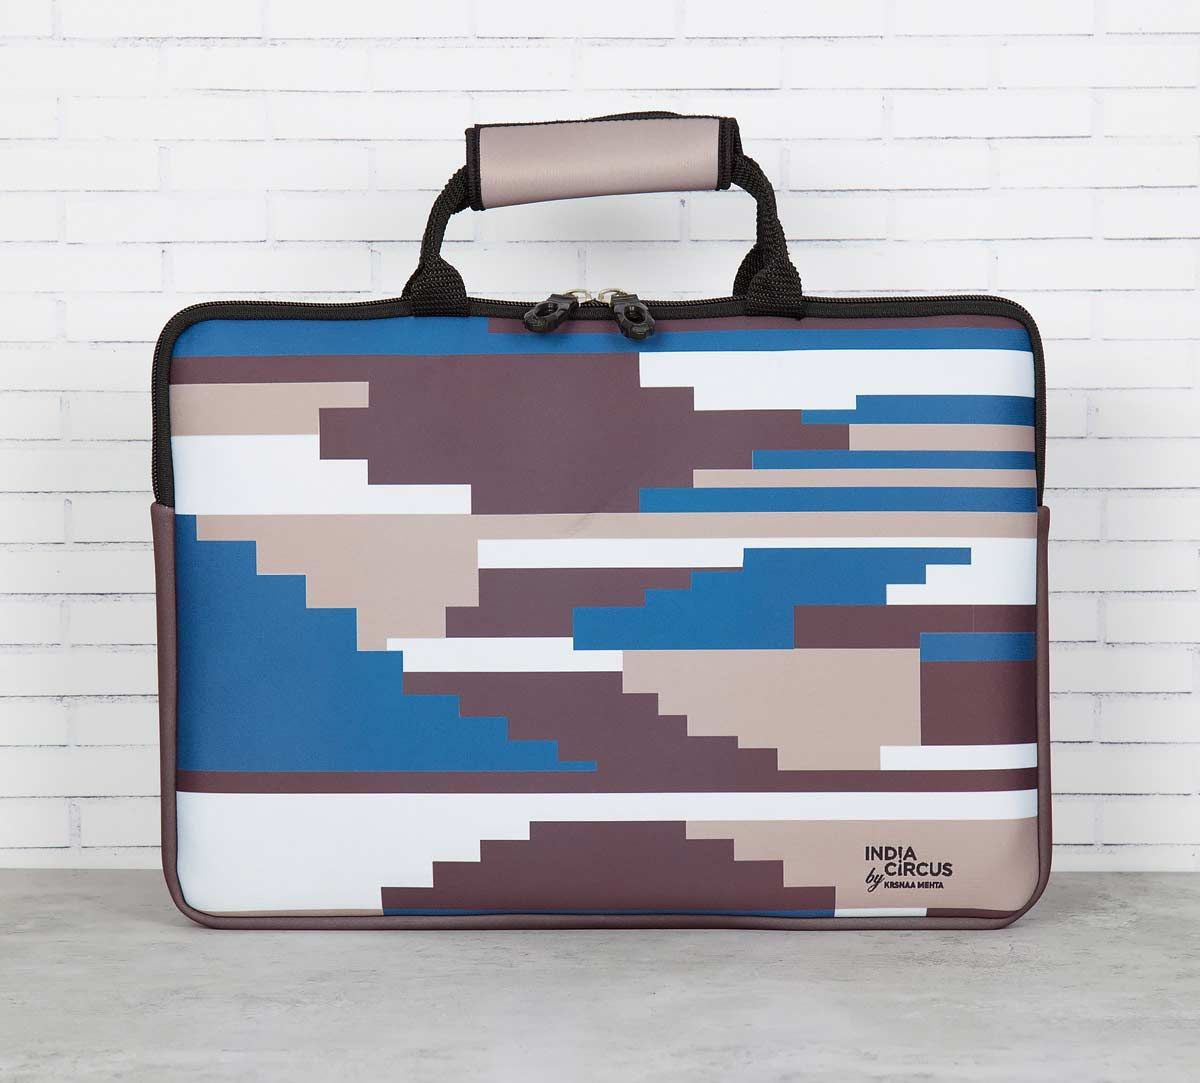 India Circus Weaves of Blarney Laptop Sleeve and Bag